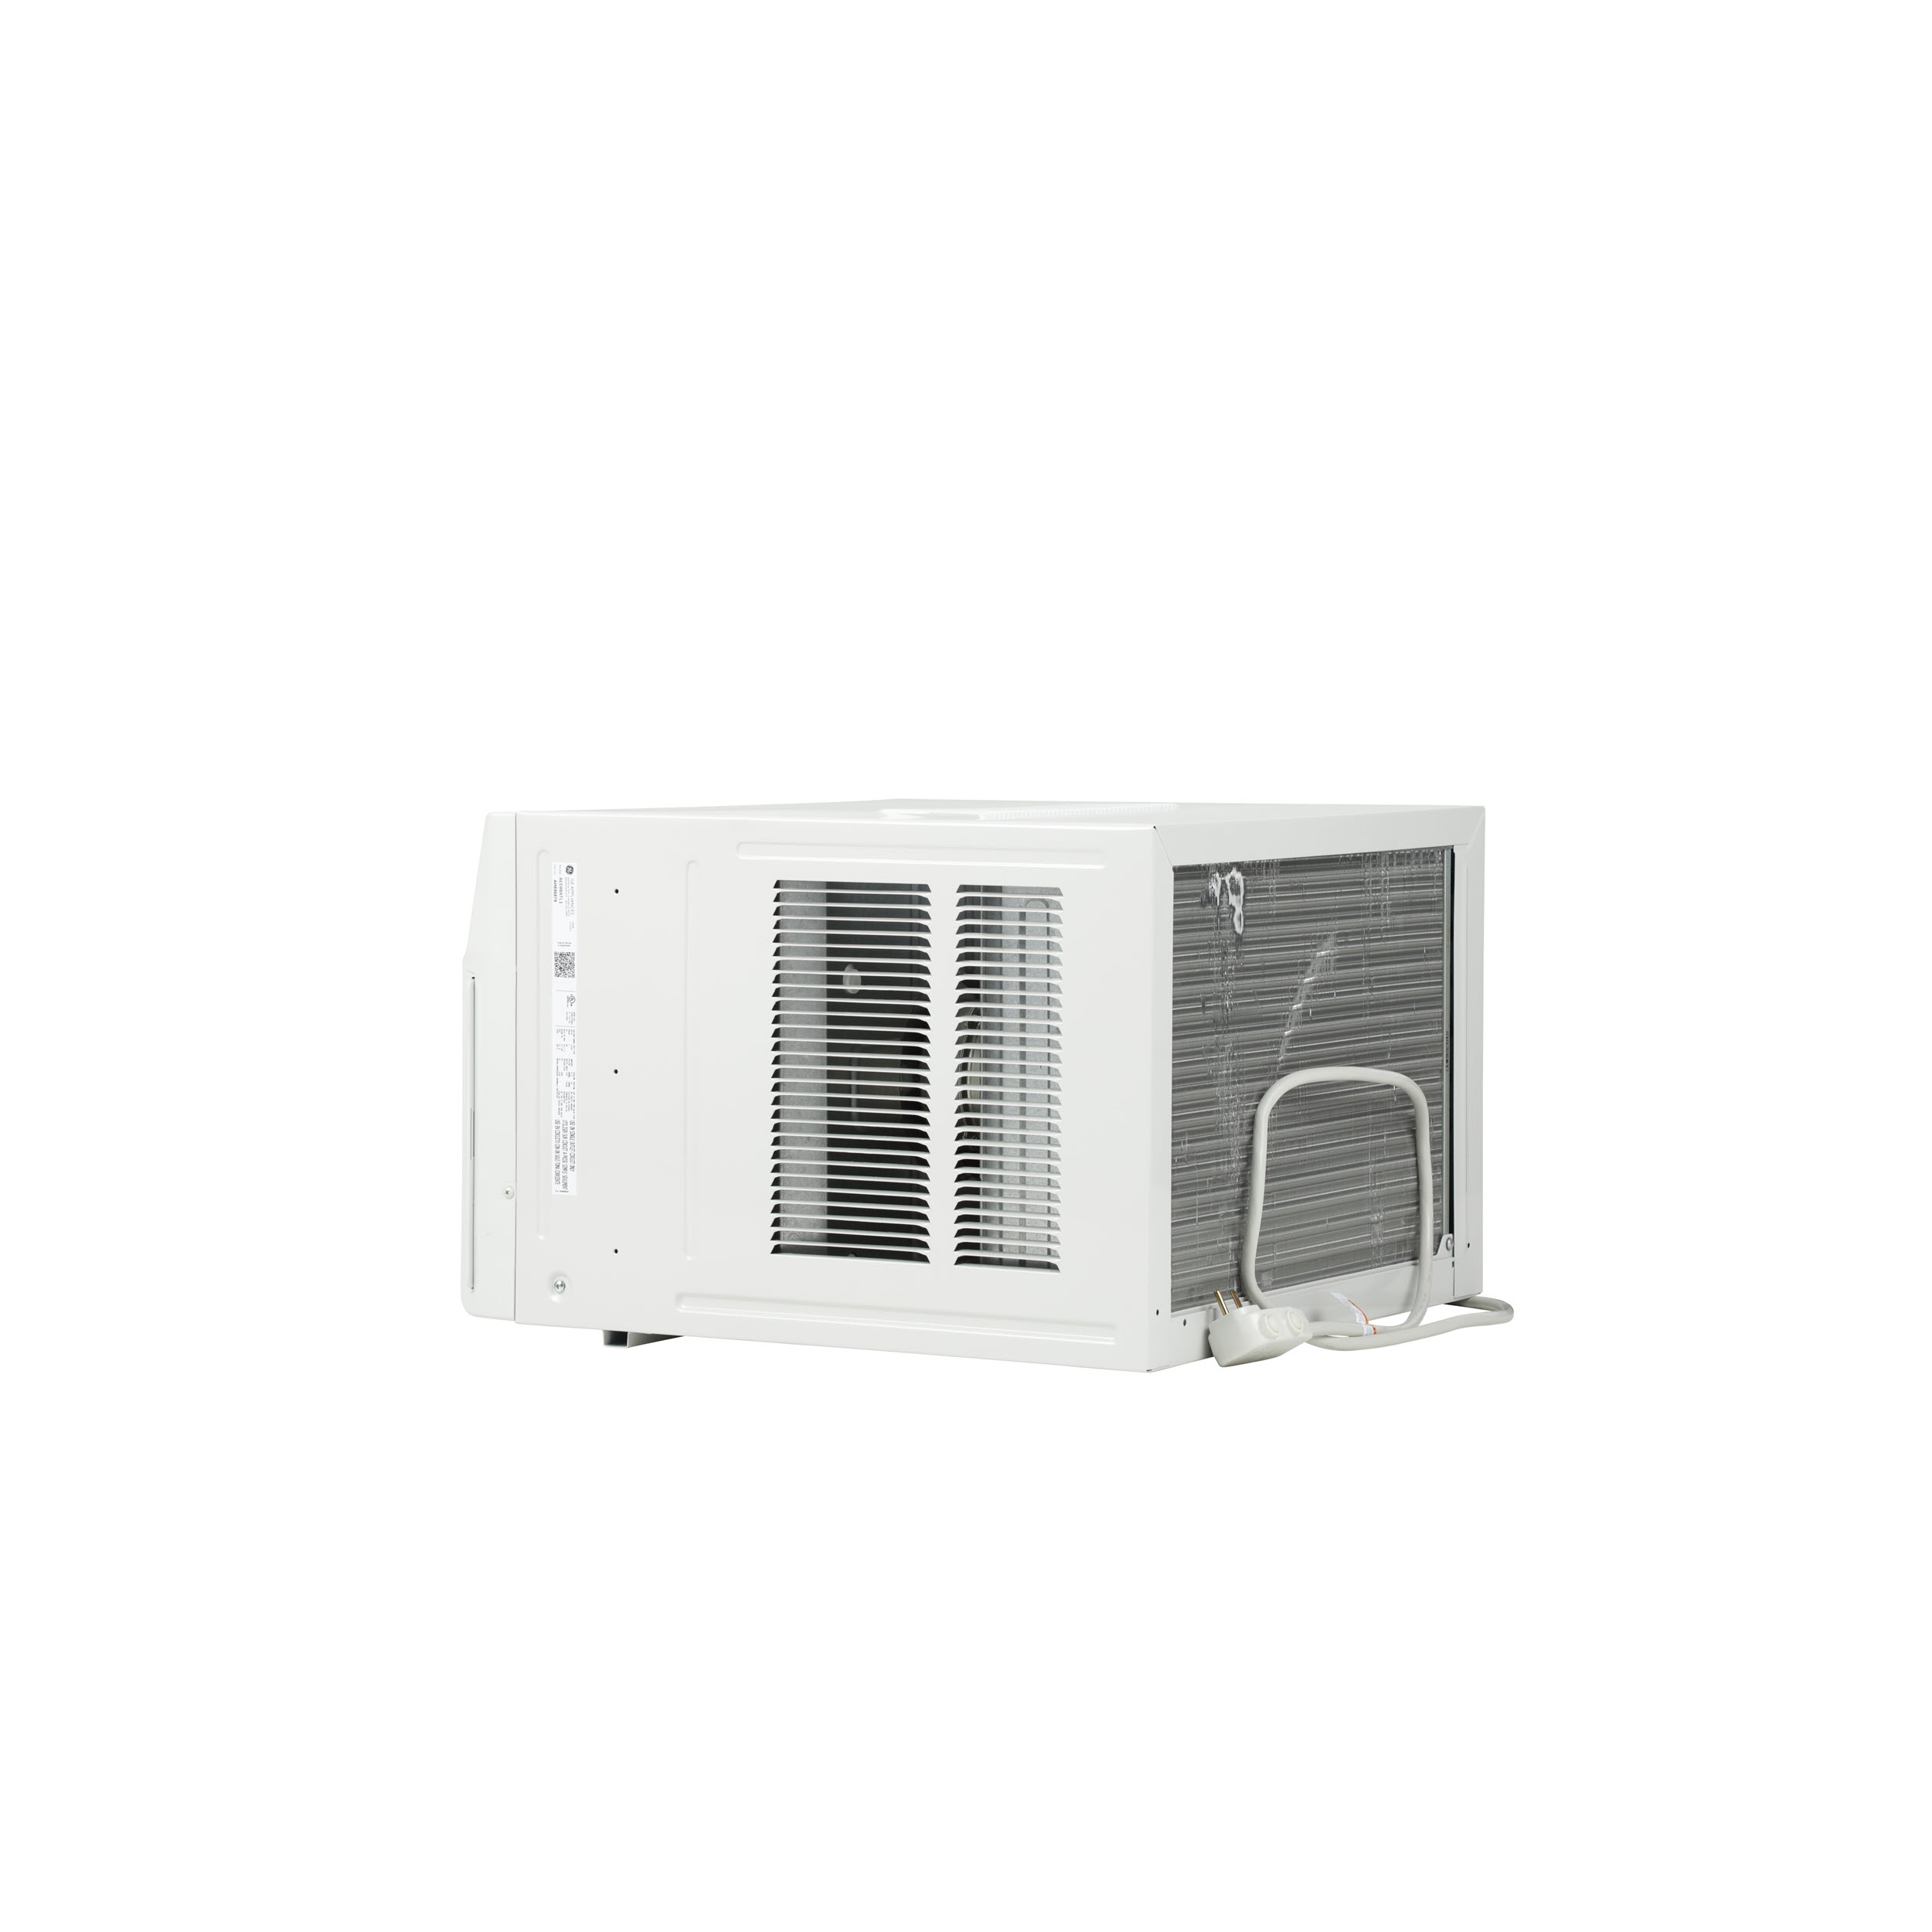 Model: AEE18DT | GE GE® 230 Volt Electronic Heat/Cool Room Air Conditioner